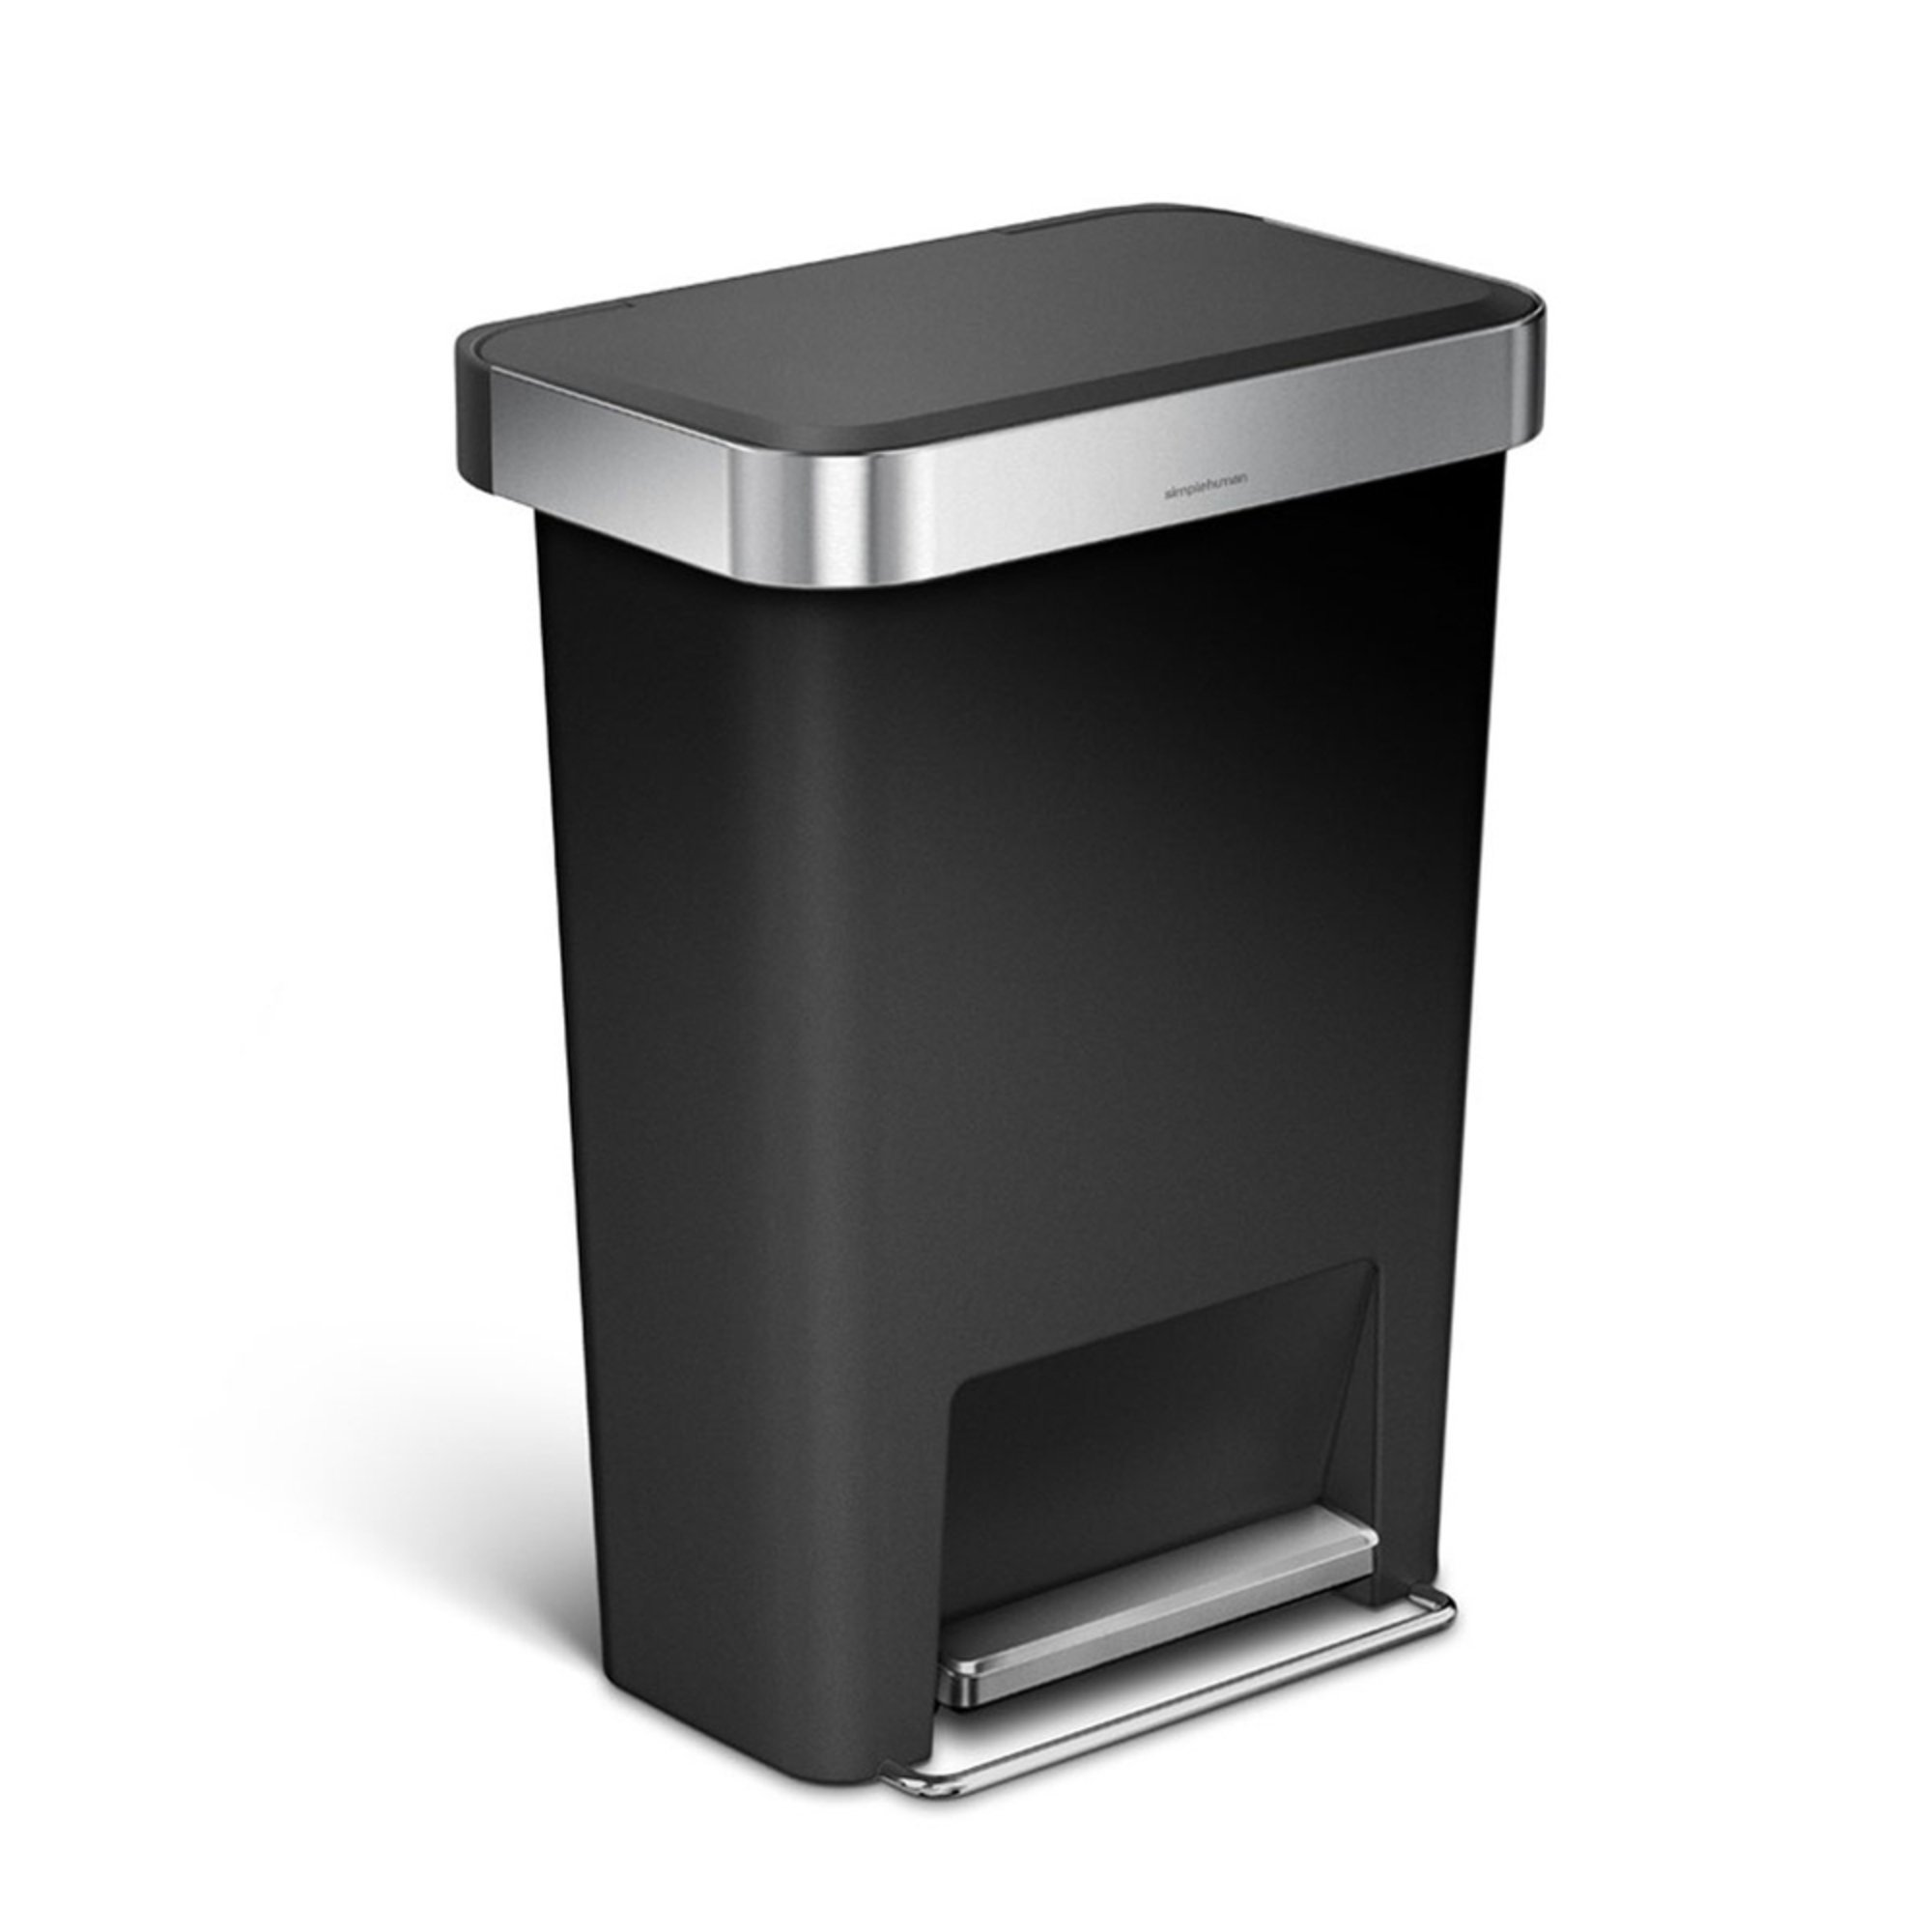 Simplehuman 45l rectangular step can black plastic trash cans recycling bins for the home - Rectangular garbage cans ...